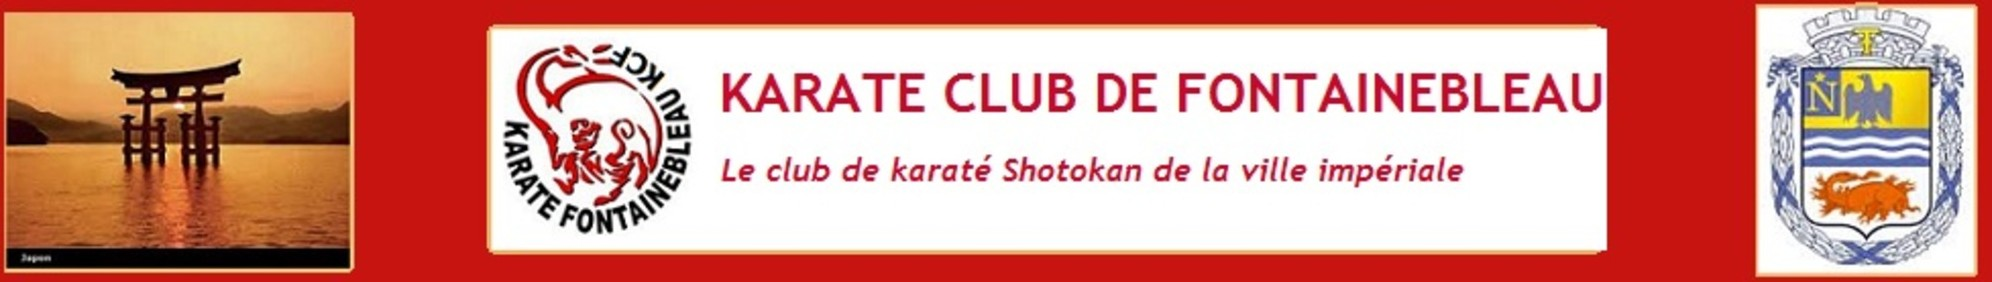 KARATE CLUB DE FONTAINEBLEAU